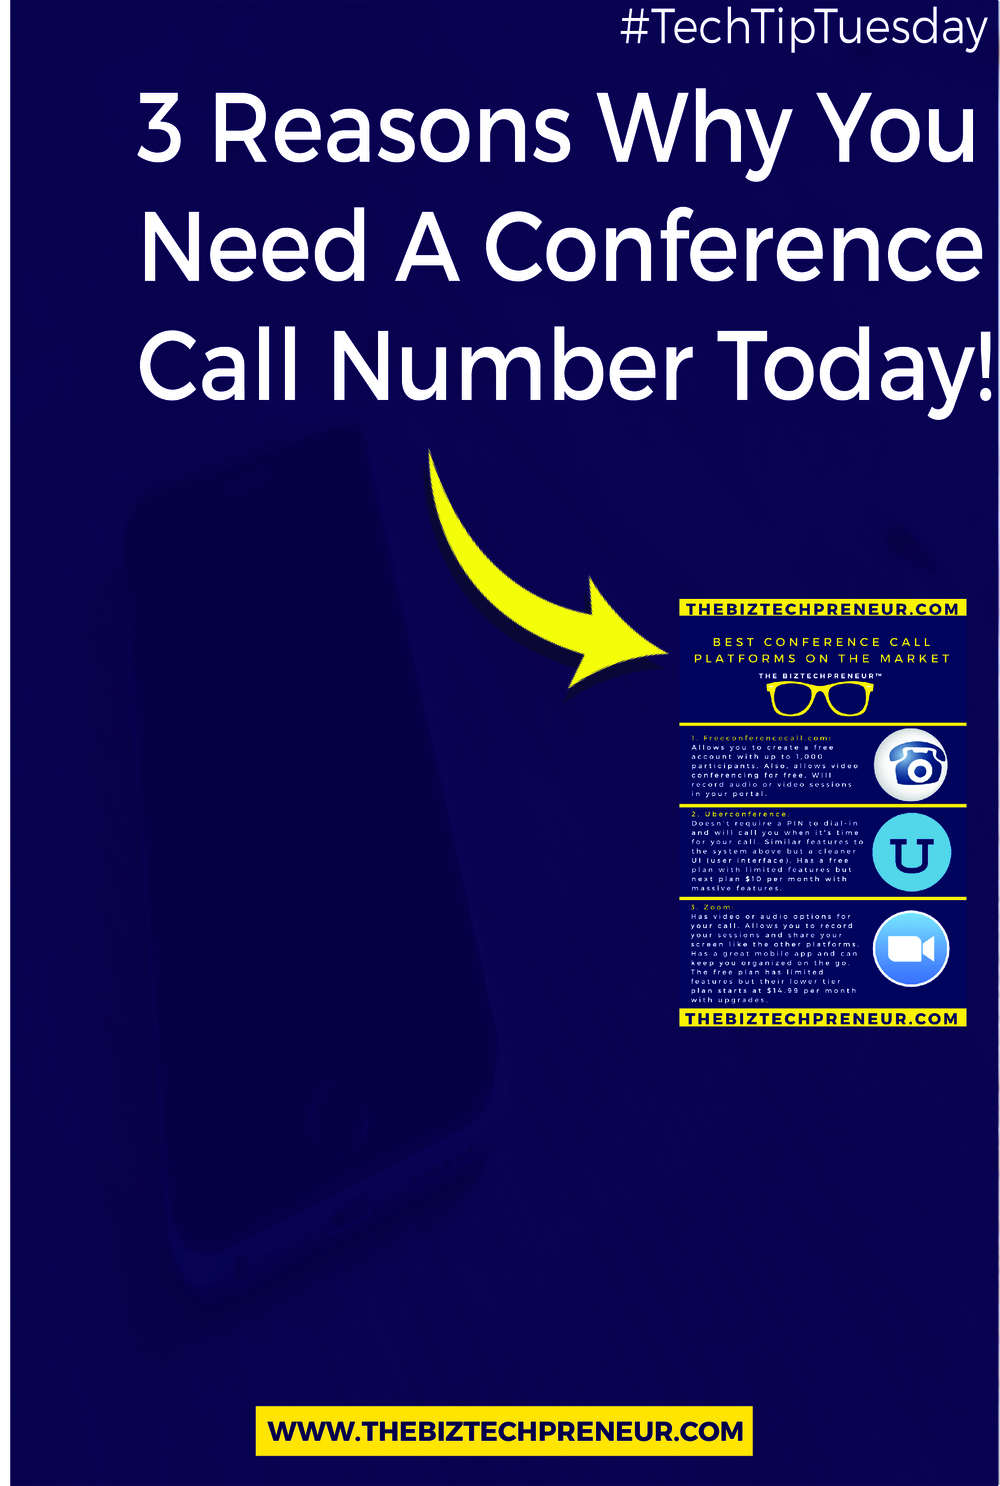 Having a conference call number shows many things when people book time to chat with you. You're letting people know that you have a system in place for them to contact you so that you can discuss the purpose of your service for them. Here are the 3 reasons why you need a conference call number and why you should sign up for one today...